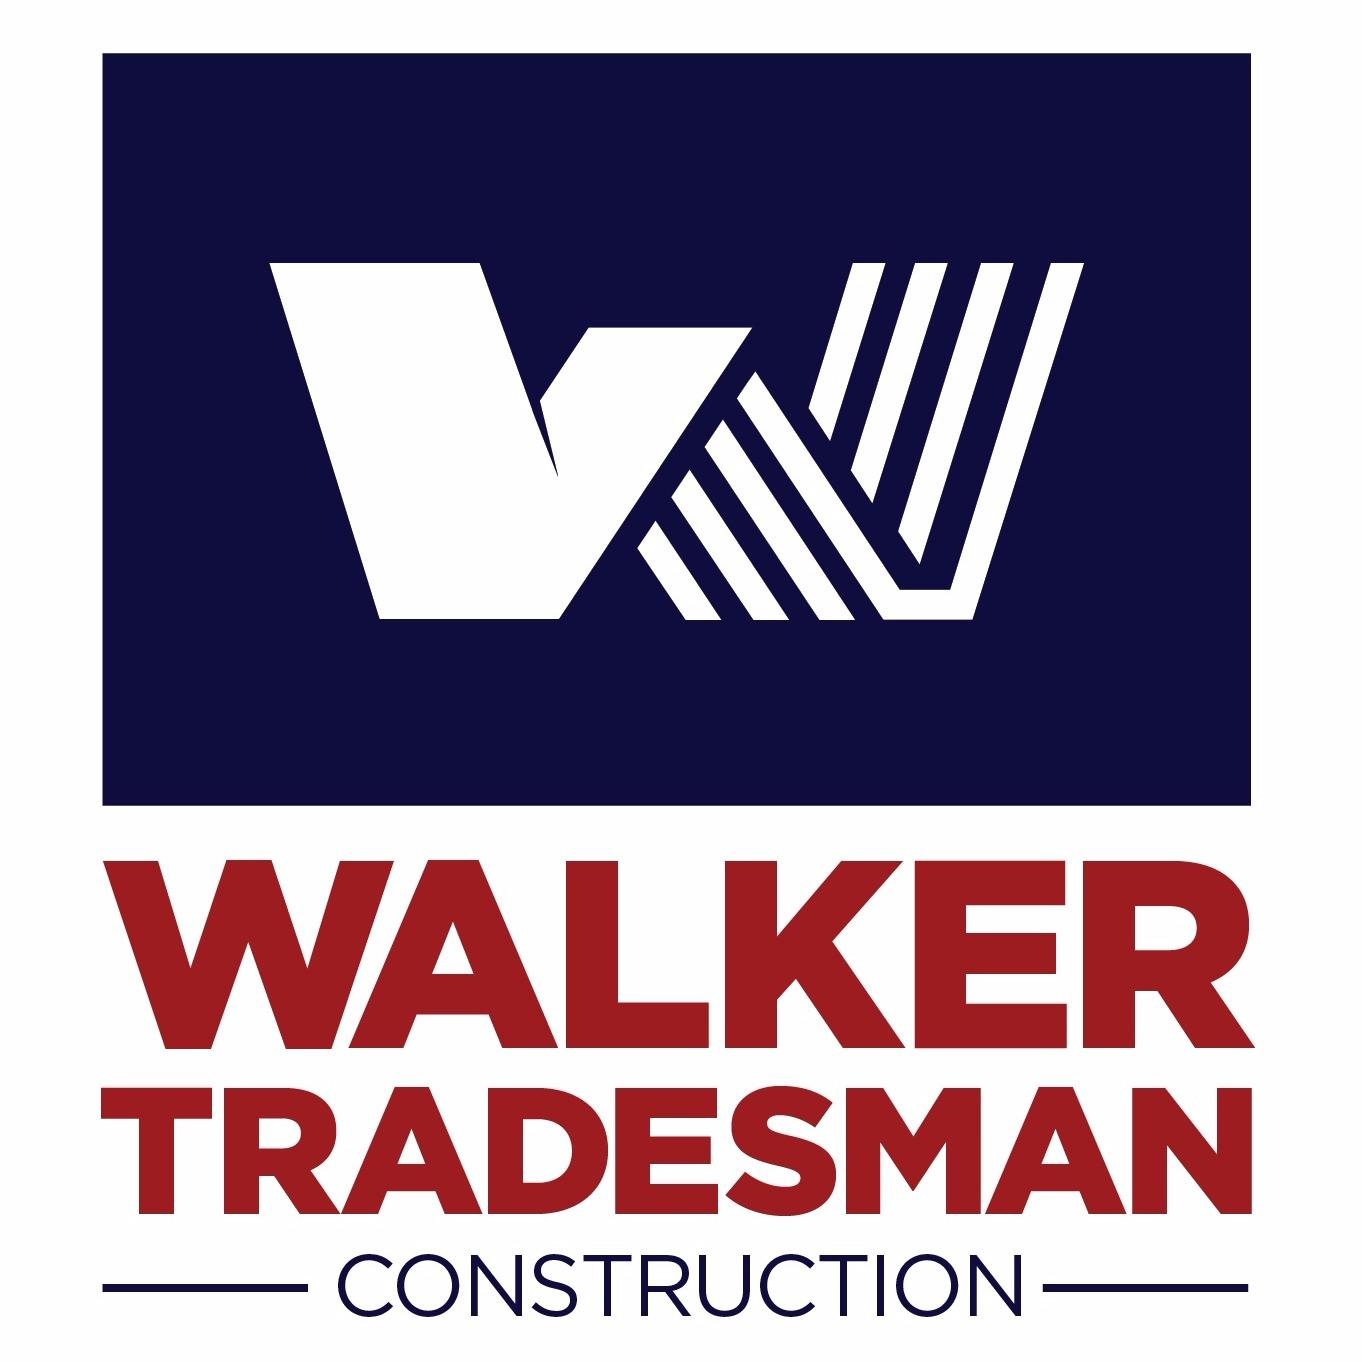 Walker Tradesman Construction